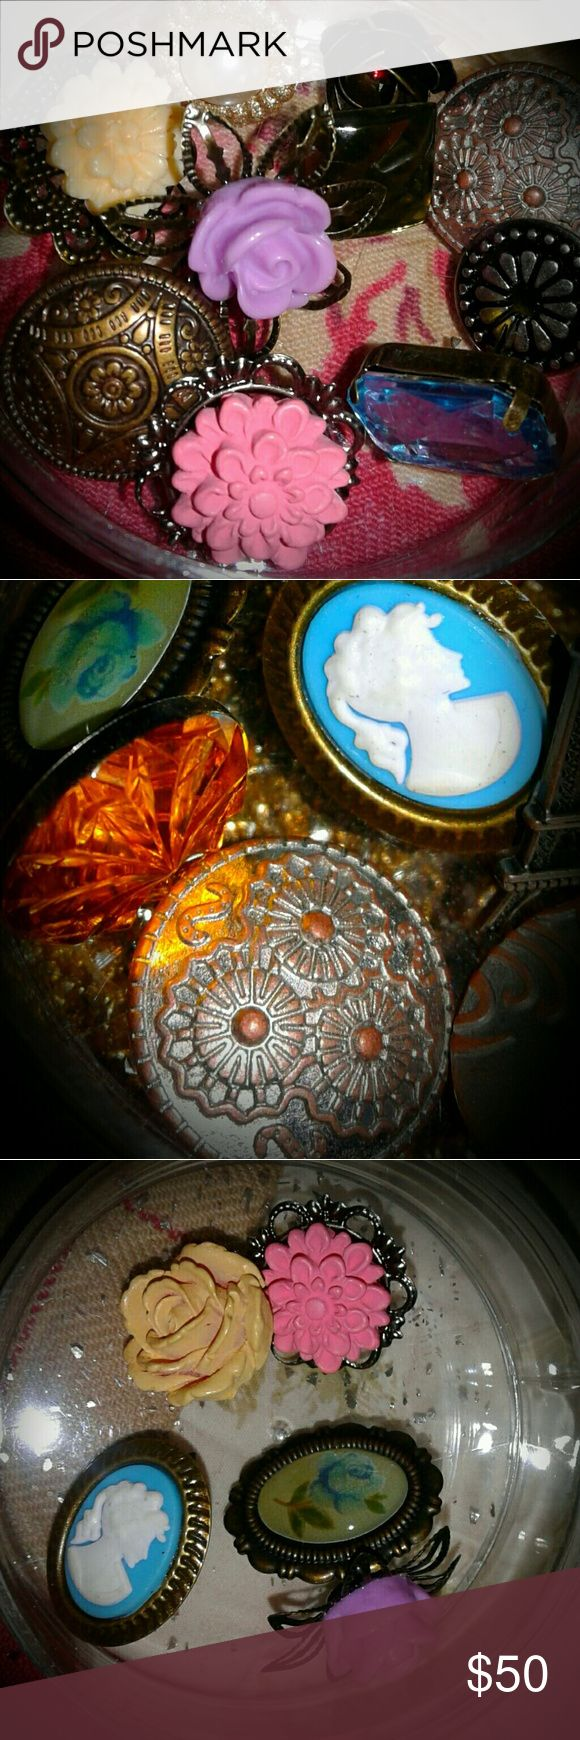 Victorian style Buttons and Appliques A wonderful assortment of buttons and other appliques used for crafts and sewing. There is also a vial of gold glitter. The pieces are secured in 4 clear plastic vials that seal together as 1 tower. All bought from Hobby Lobby. hobby lobby Other